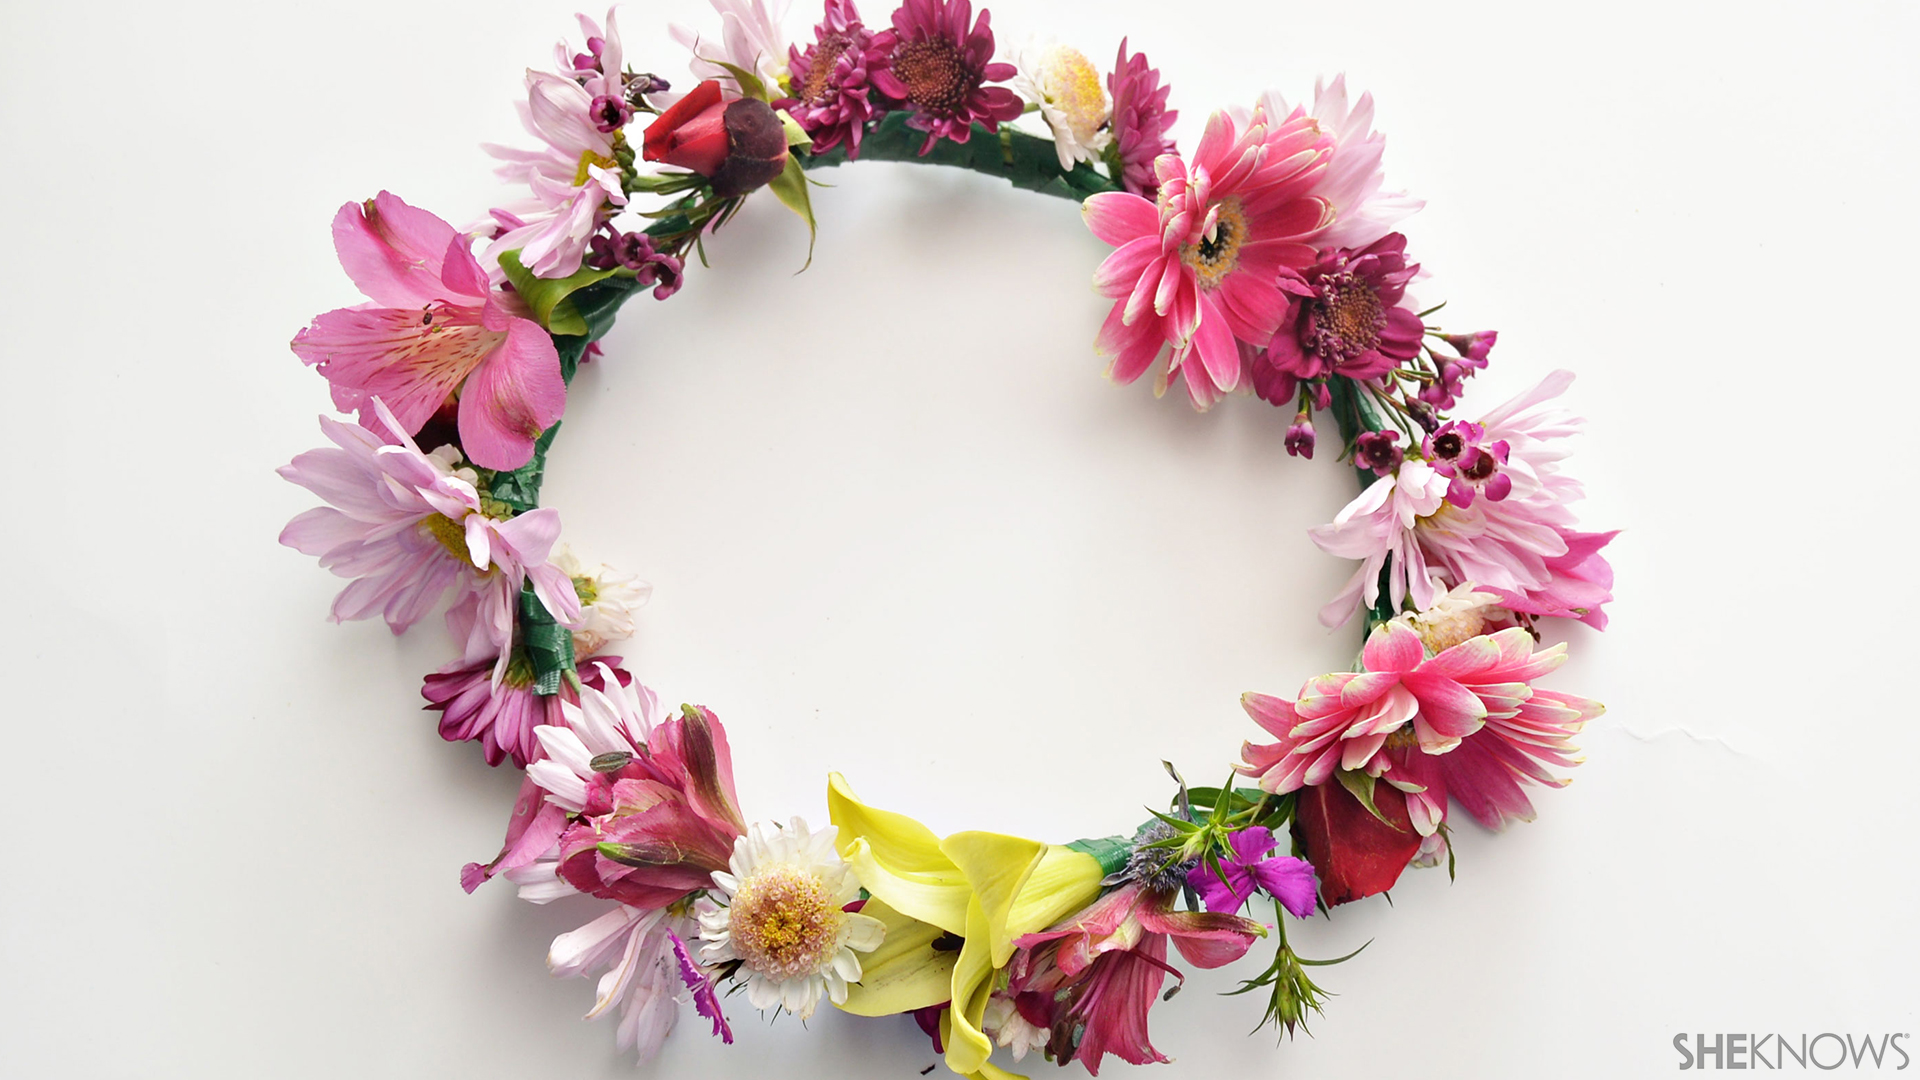 Flower crown | Sheknows.com - Final product